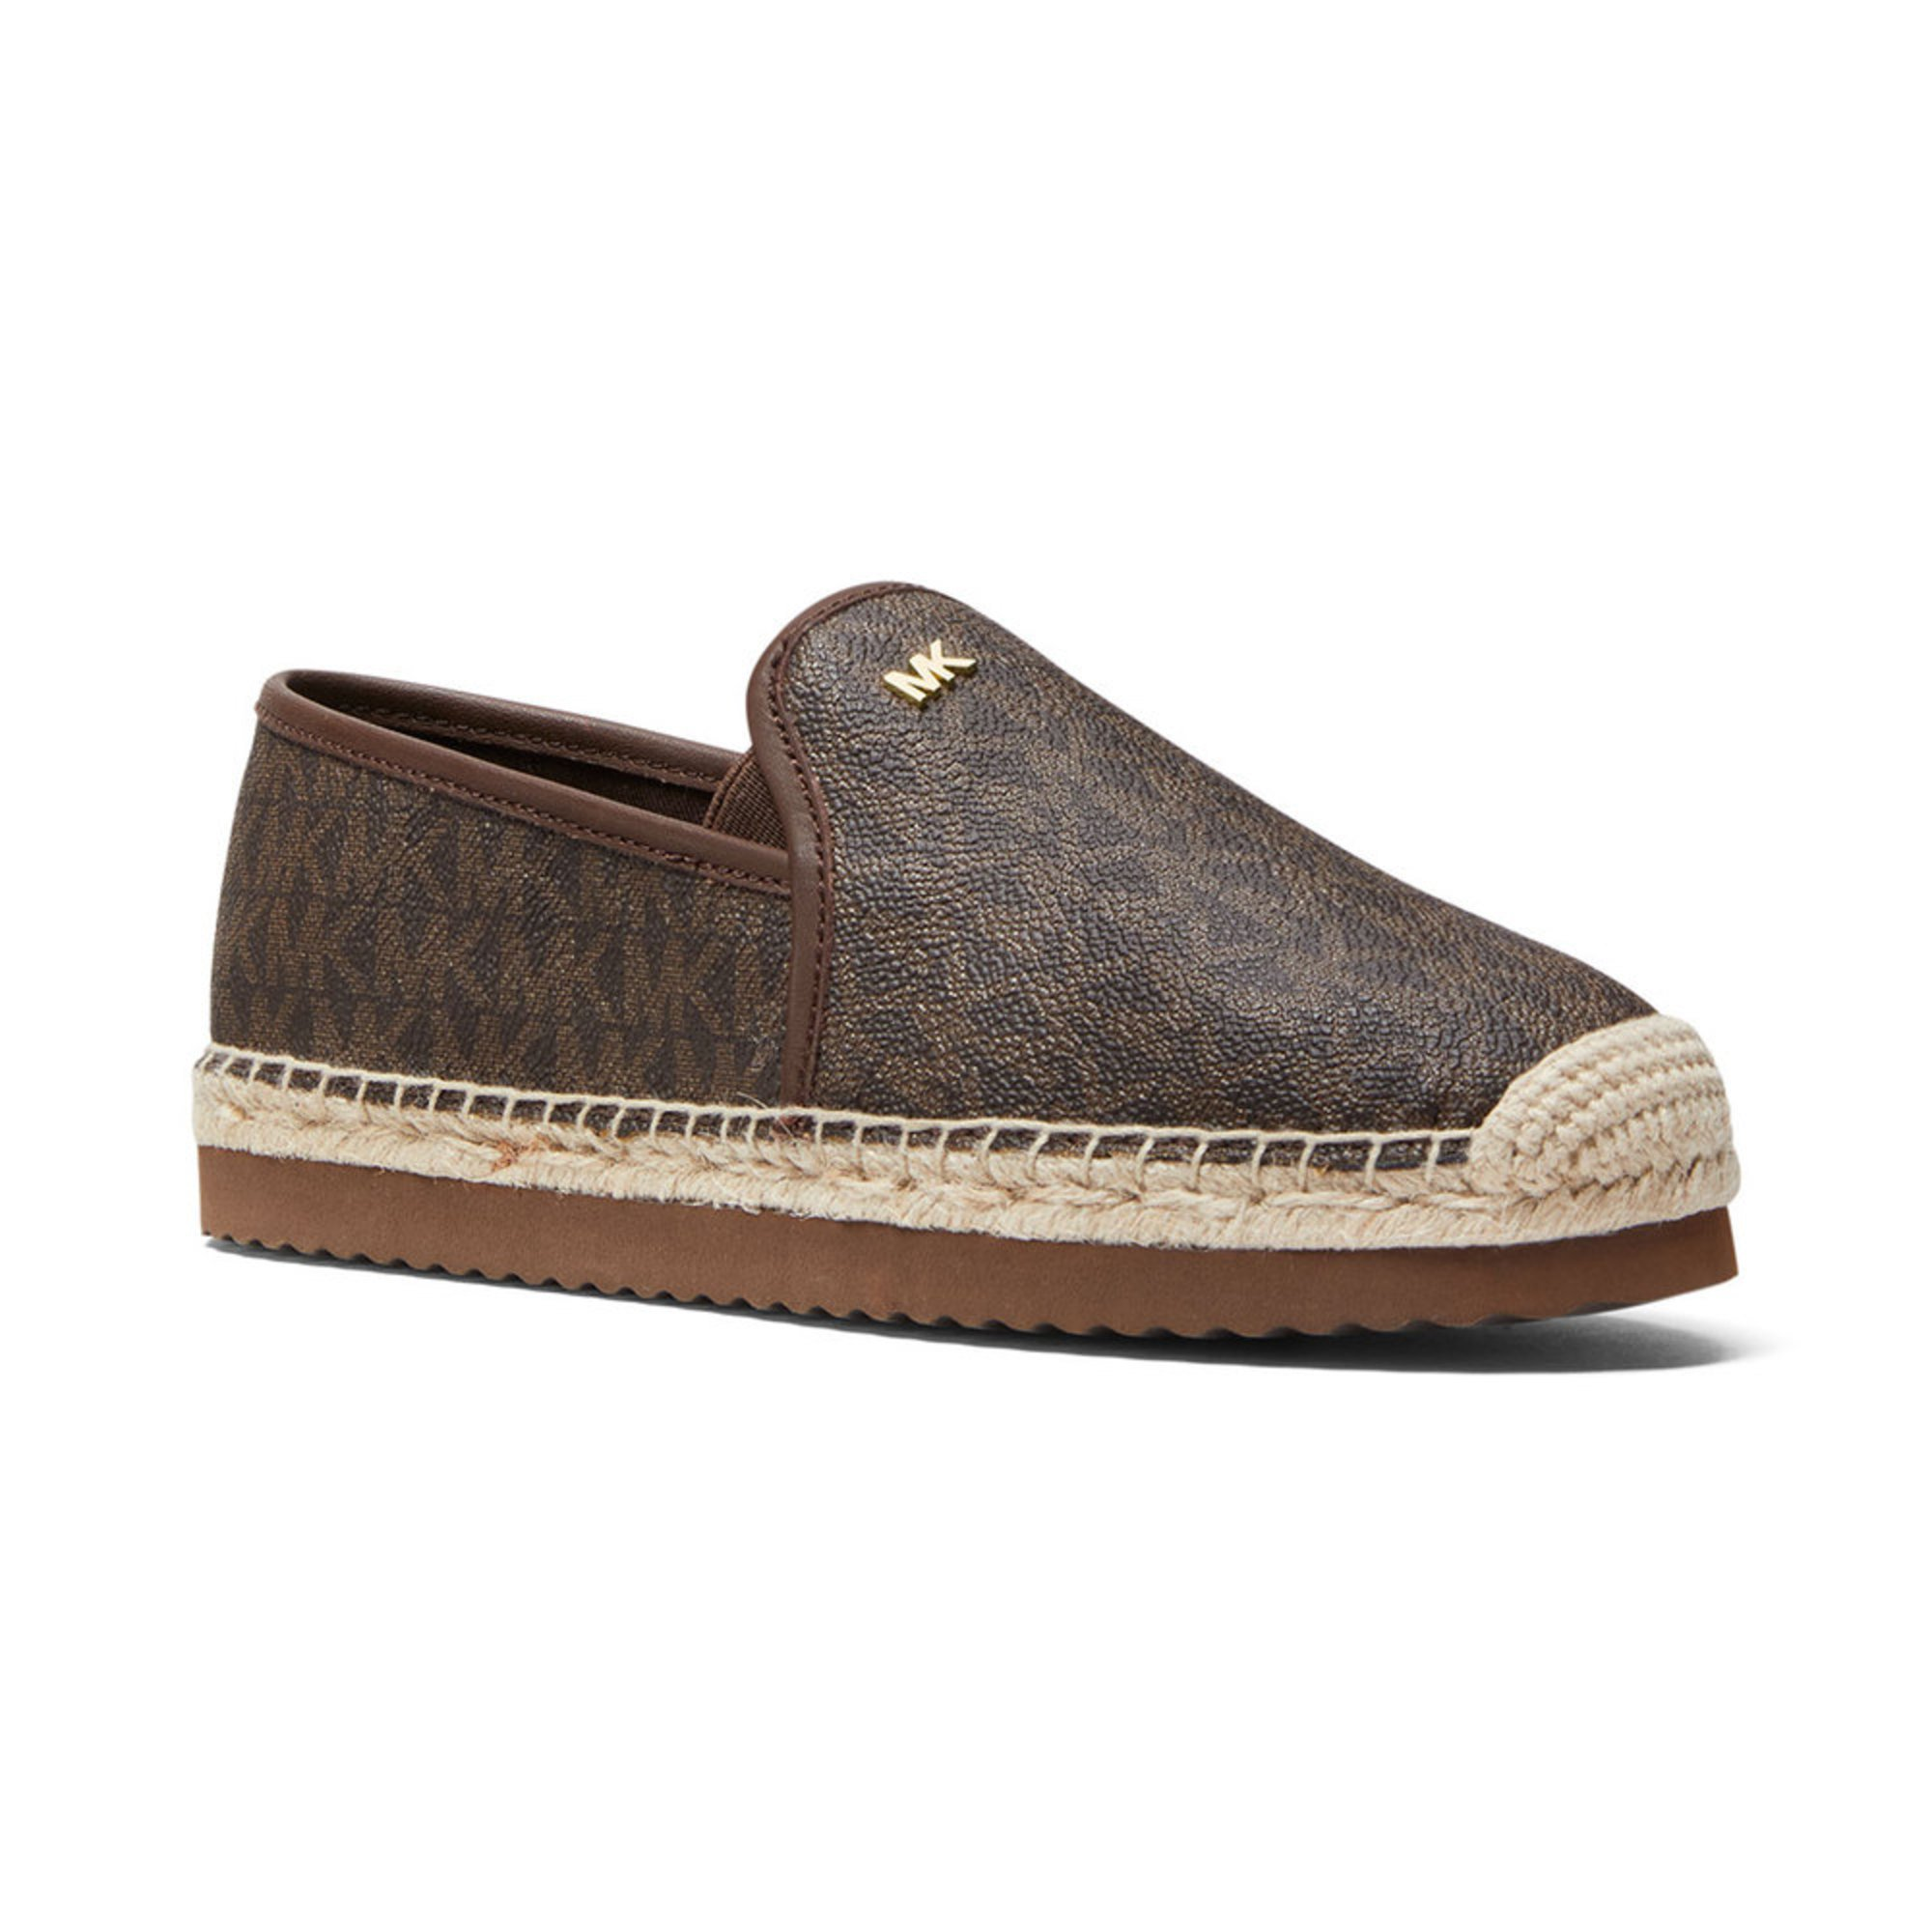 13dfc46072a2 Michael Kors Women's Hastings Espadrille Slip On | Women's Slip On ...